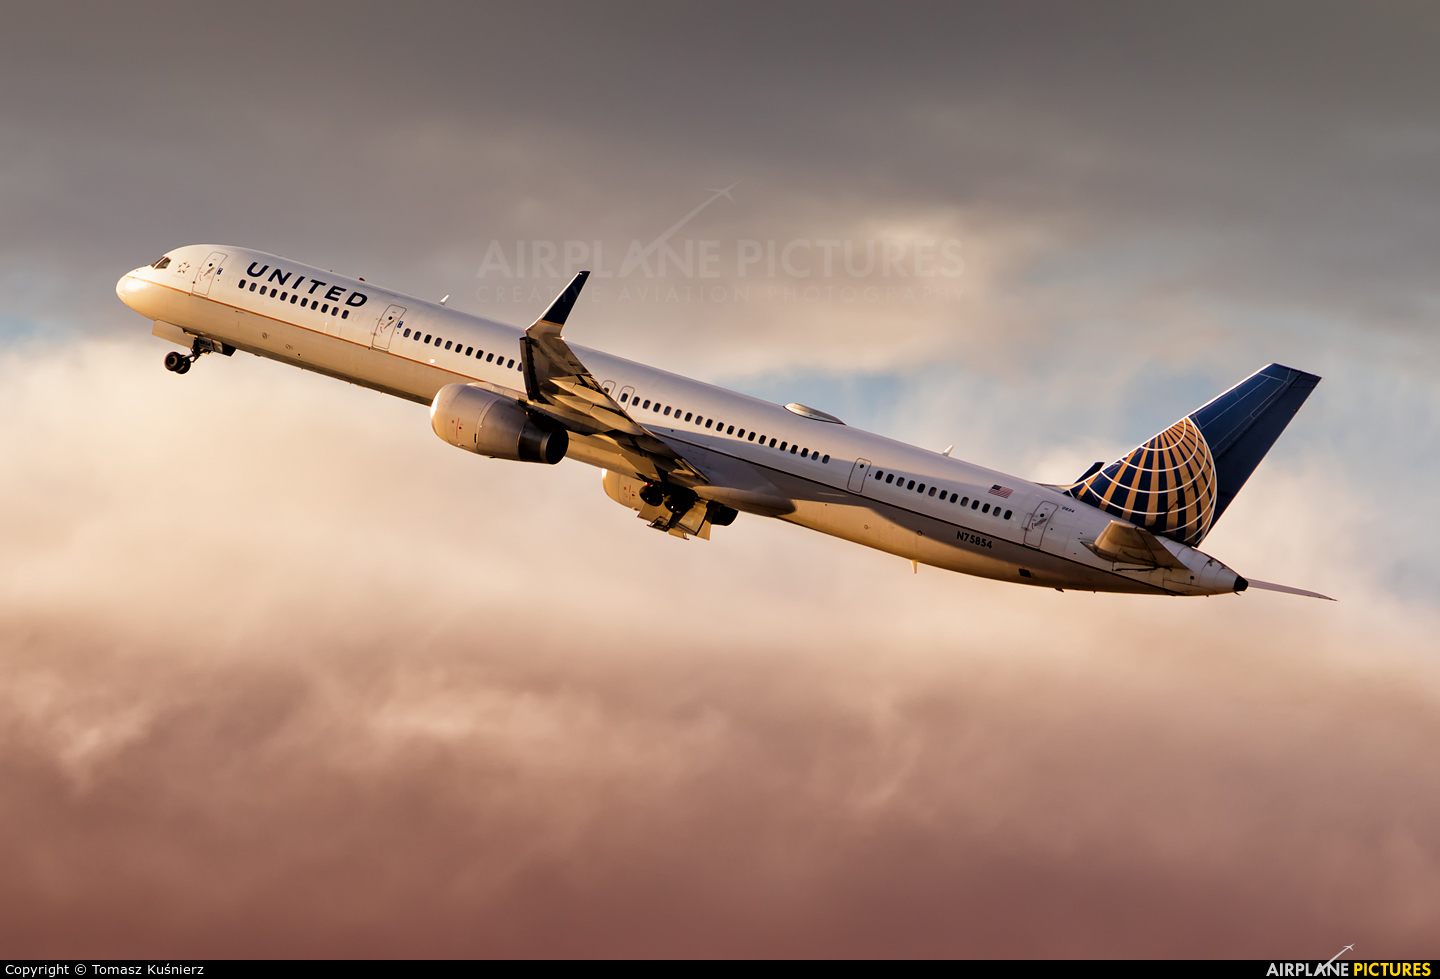 United Airlines N75854 aircraft at Los Angeles Intl